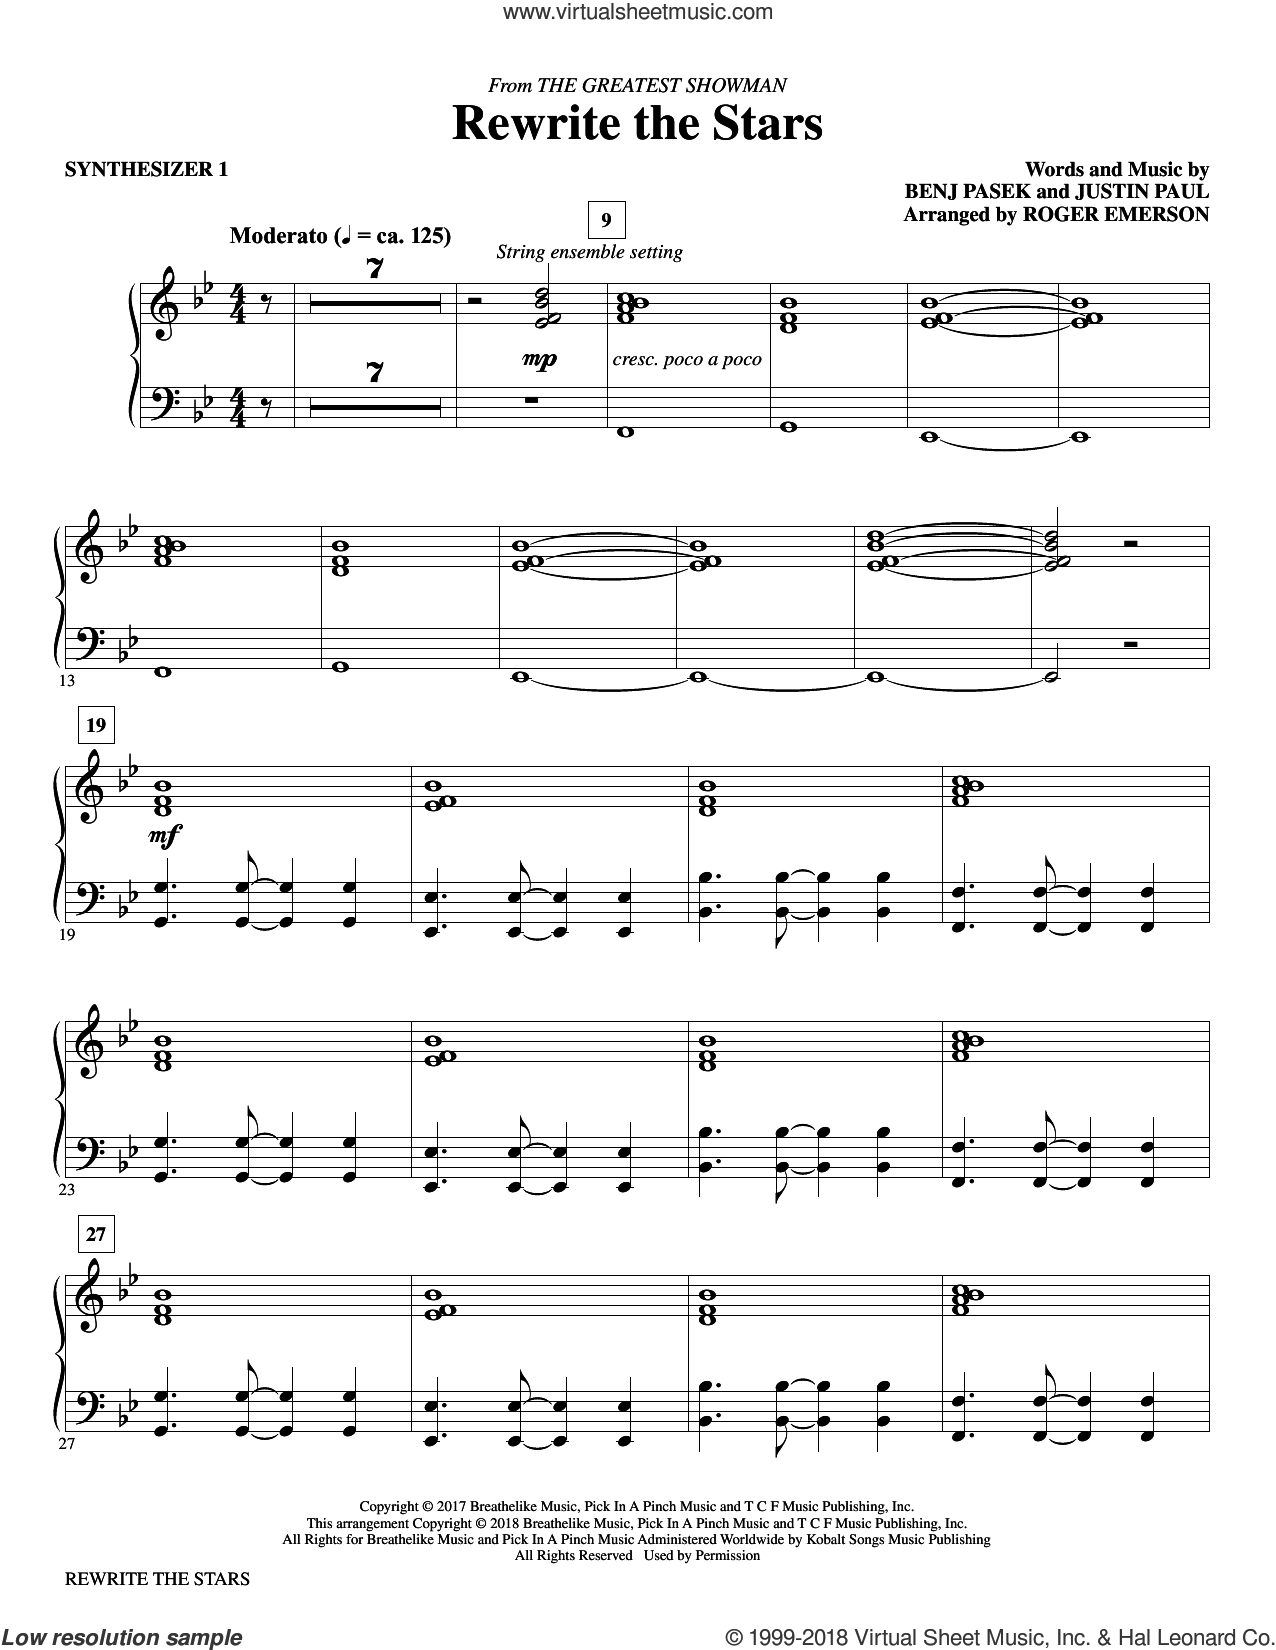 Rewrite The Stars (complete set of parts) sheet music for orchestra/band by Roger Emerson, Benj Pasek, Justin Paul and Zac Efron & Zendaya, intermediate skill level